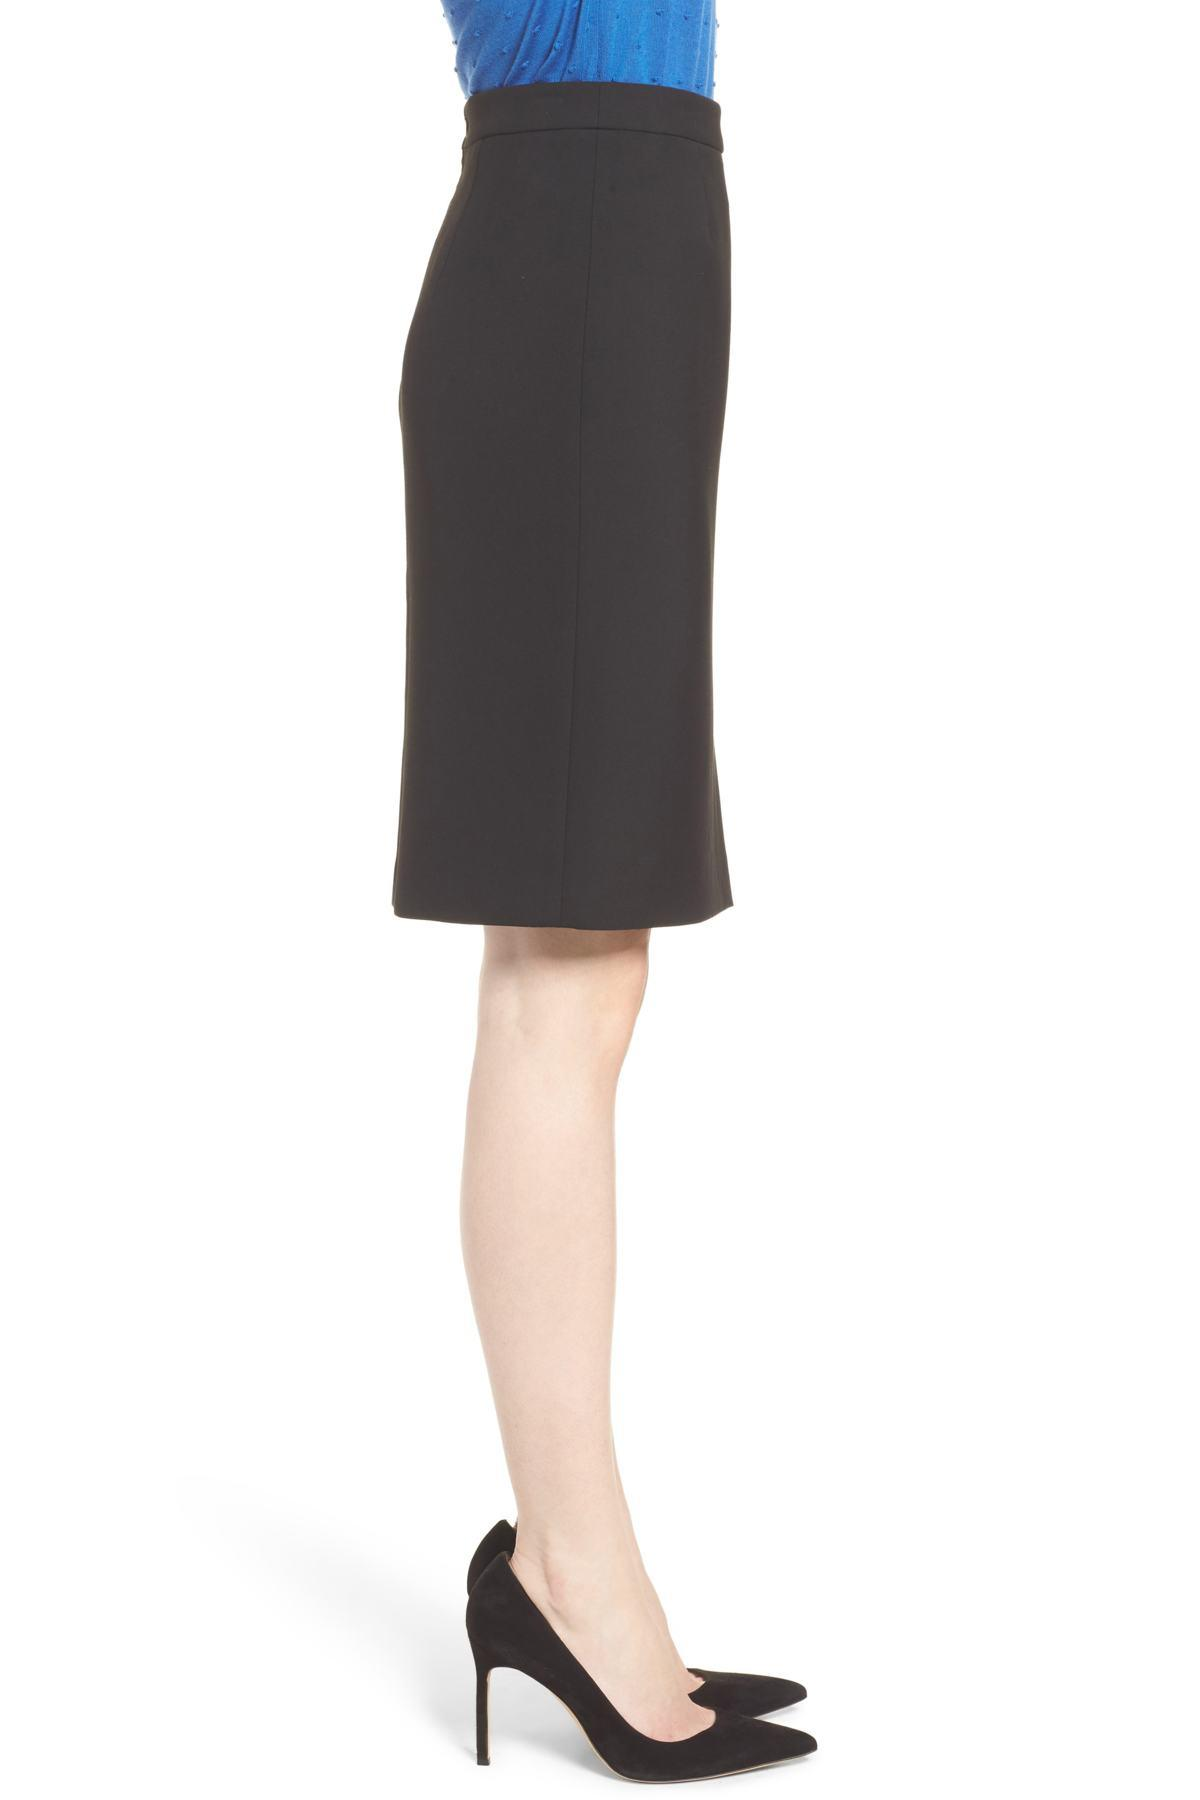 0304d64b Lyst - BOSS Volania Ponte Slit Pencil Skirt in Black - Save 35%